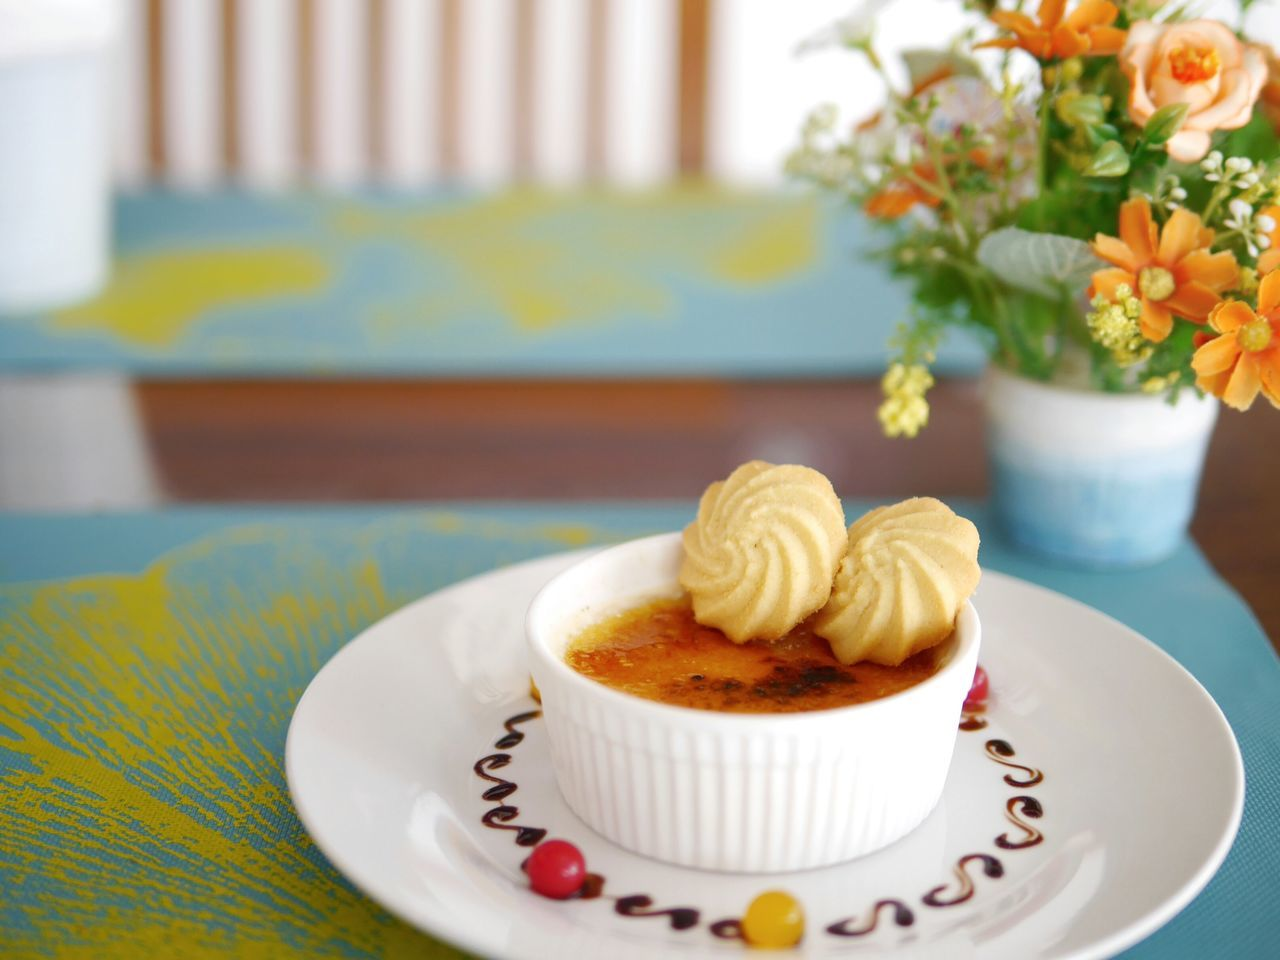 Plate Flower Dessert Sweet Food Celebration Indoors  Sweet Pie No People Close-up Day Social Issues Sweet Dessert Cake Cookie Dessert Time! Dessertoftheday Delicious